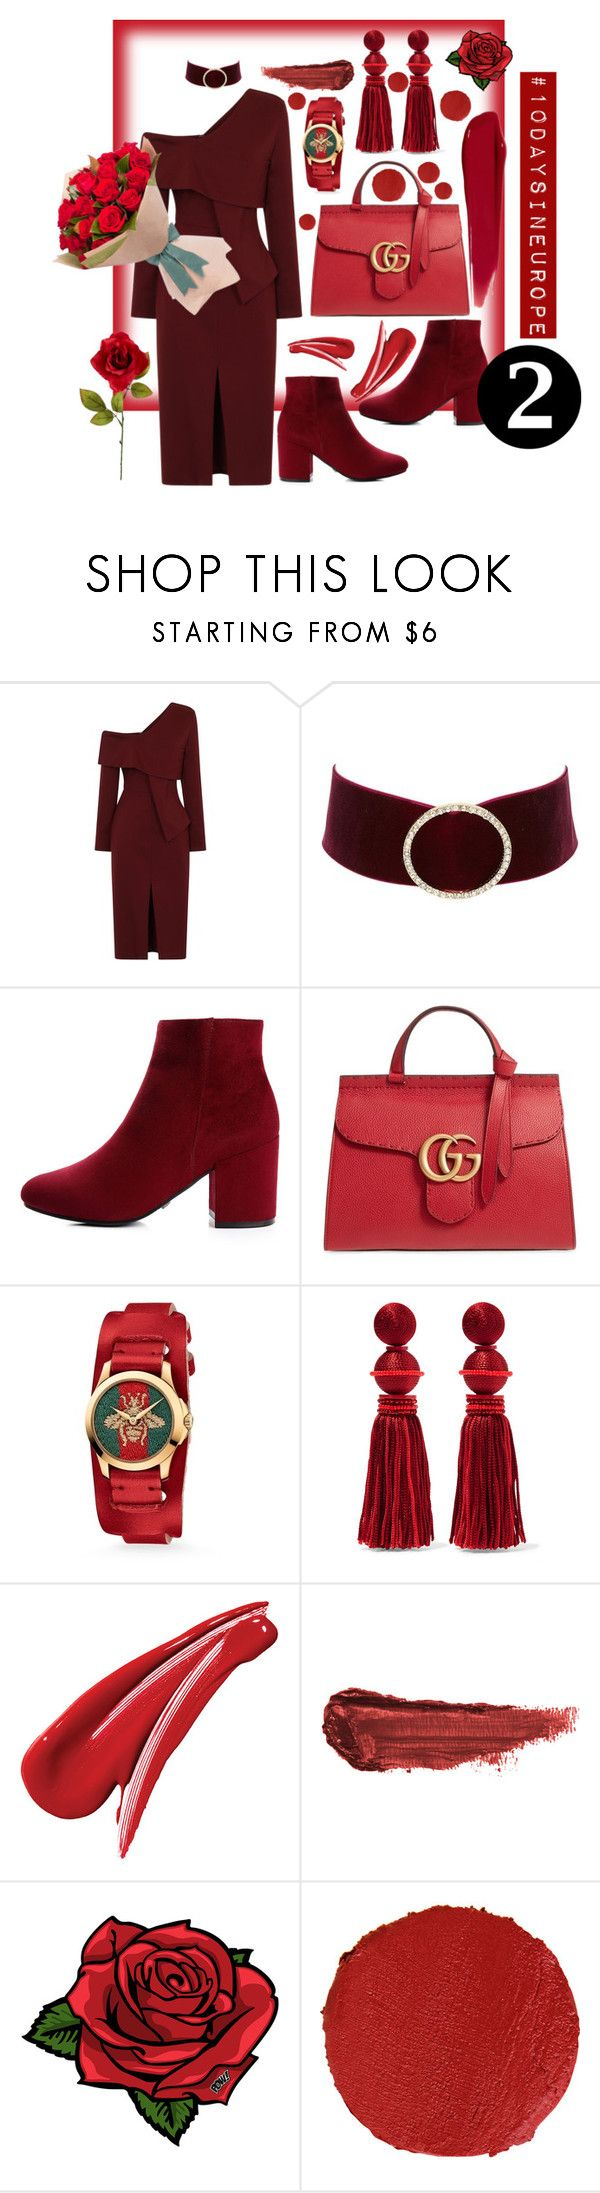 """""""mobaylejen❤️"""" by rainadreyz ❤ liked on Polyvore featuring Charlotte Russe, Gucci, Oscar de la Renta, By Terry, Pôdevache and rms beauty"""